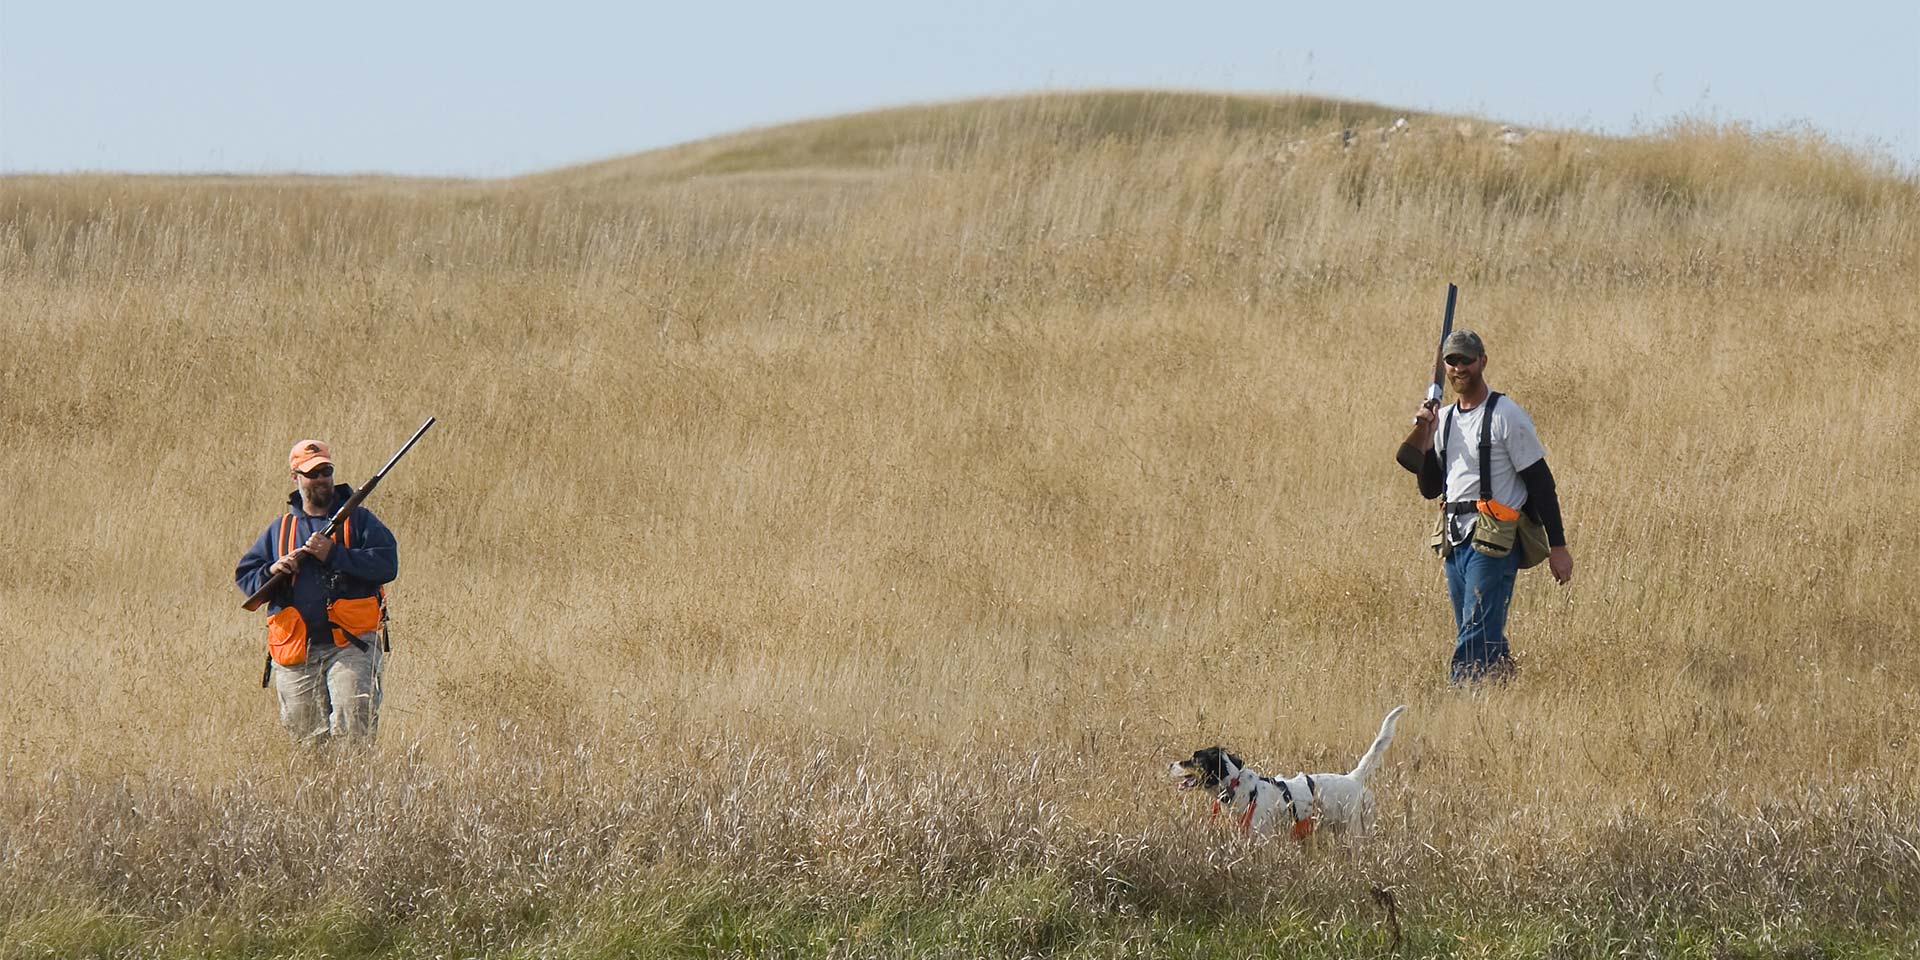 Two men hunting with a dog.